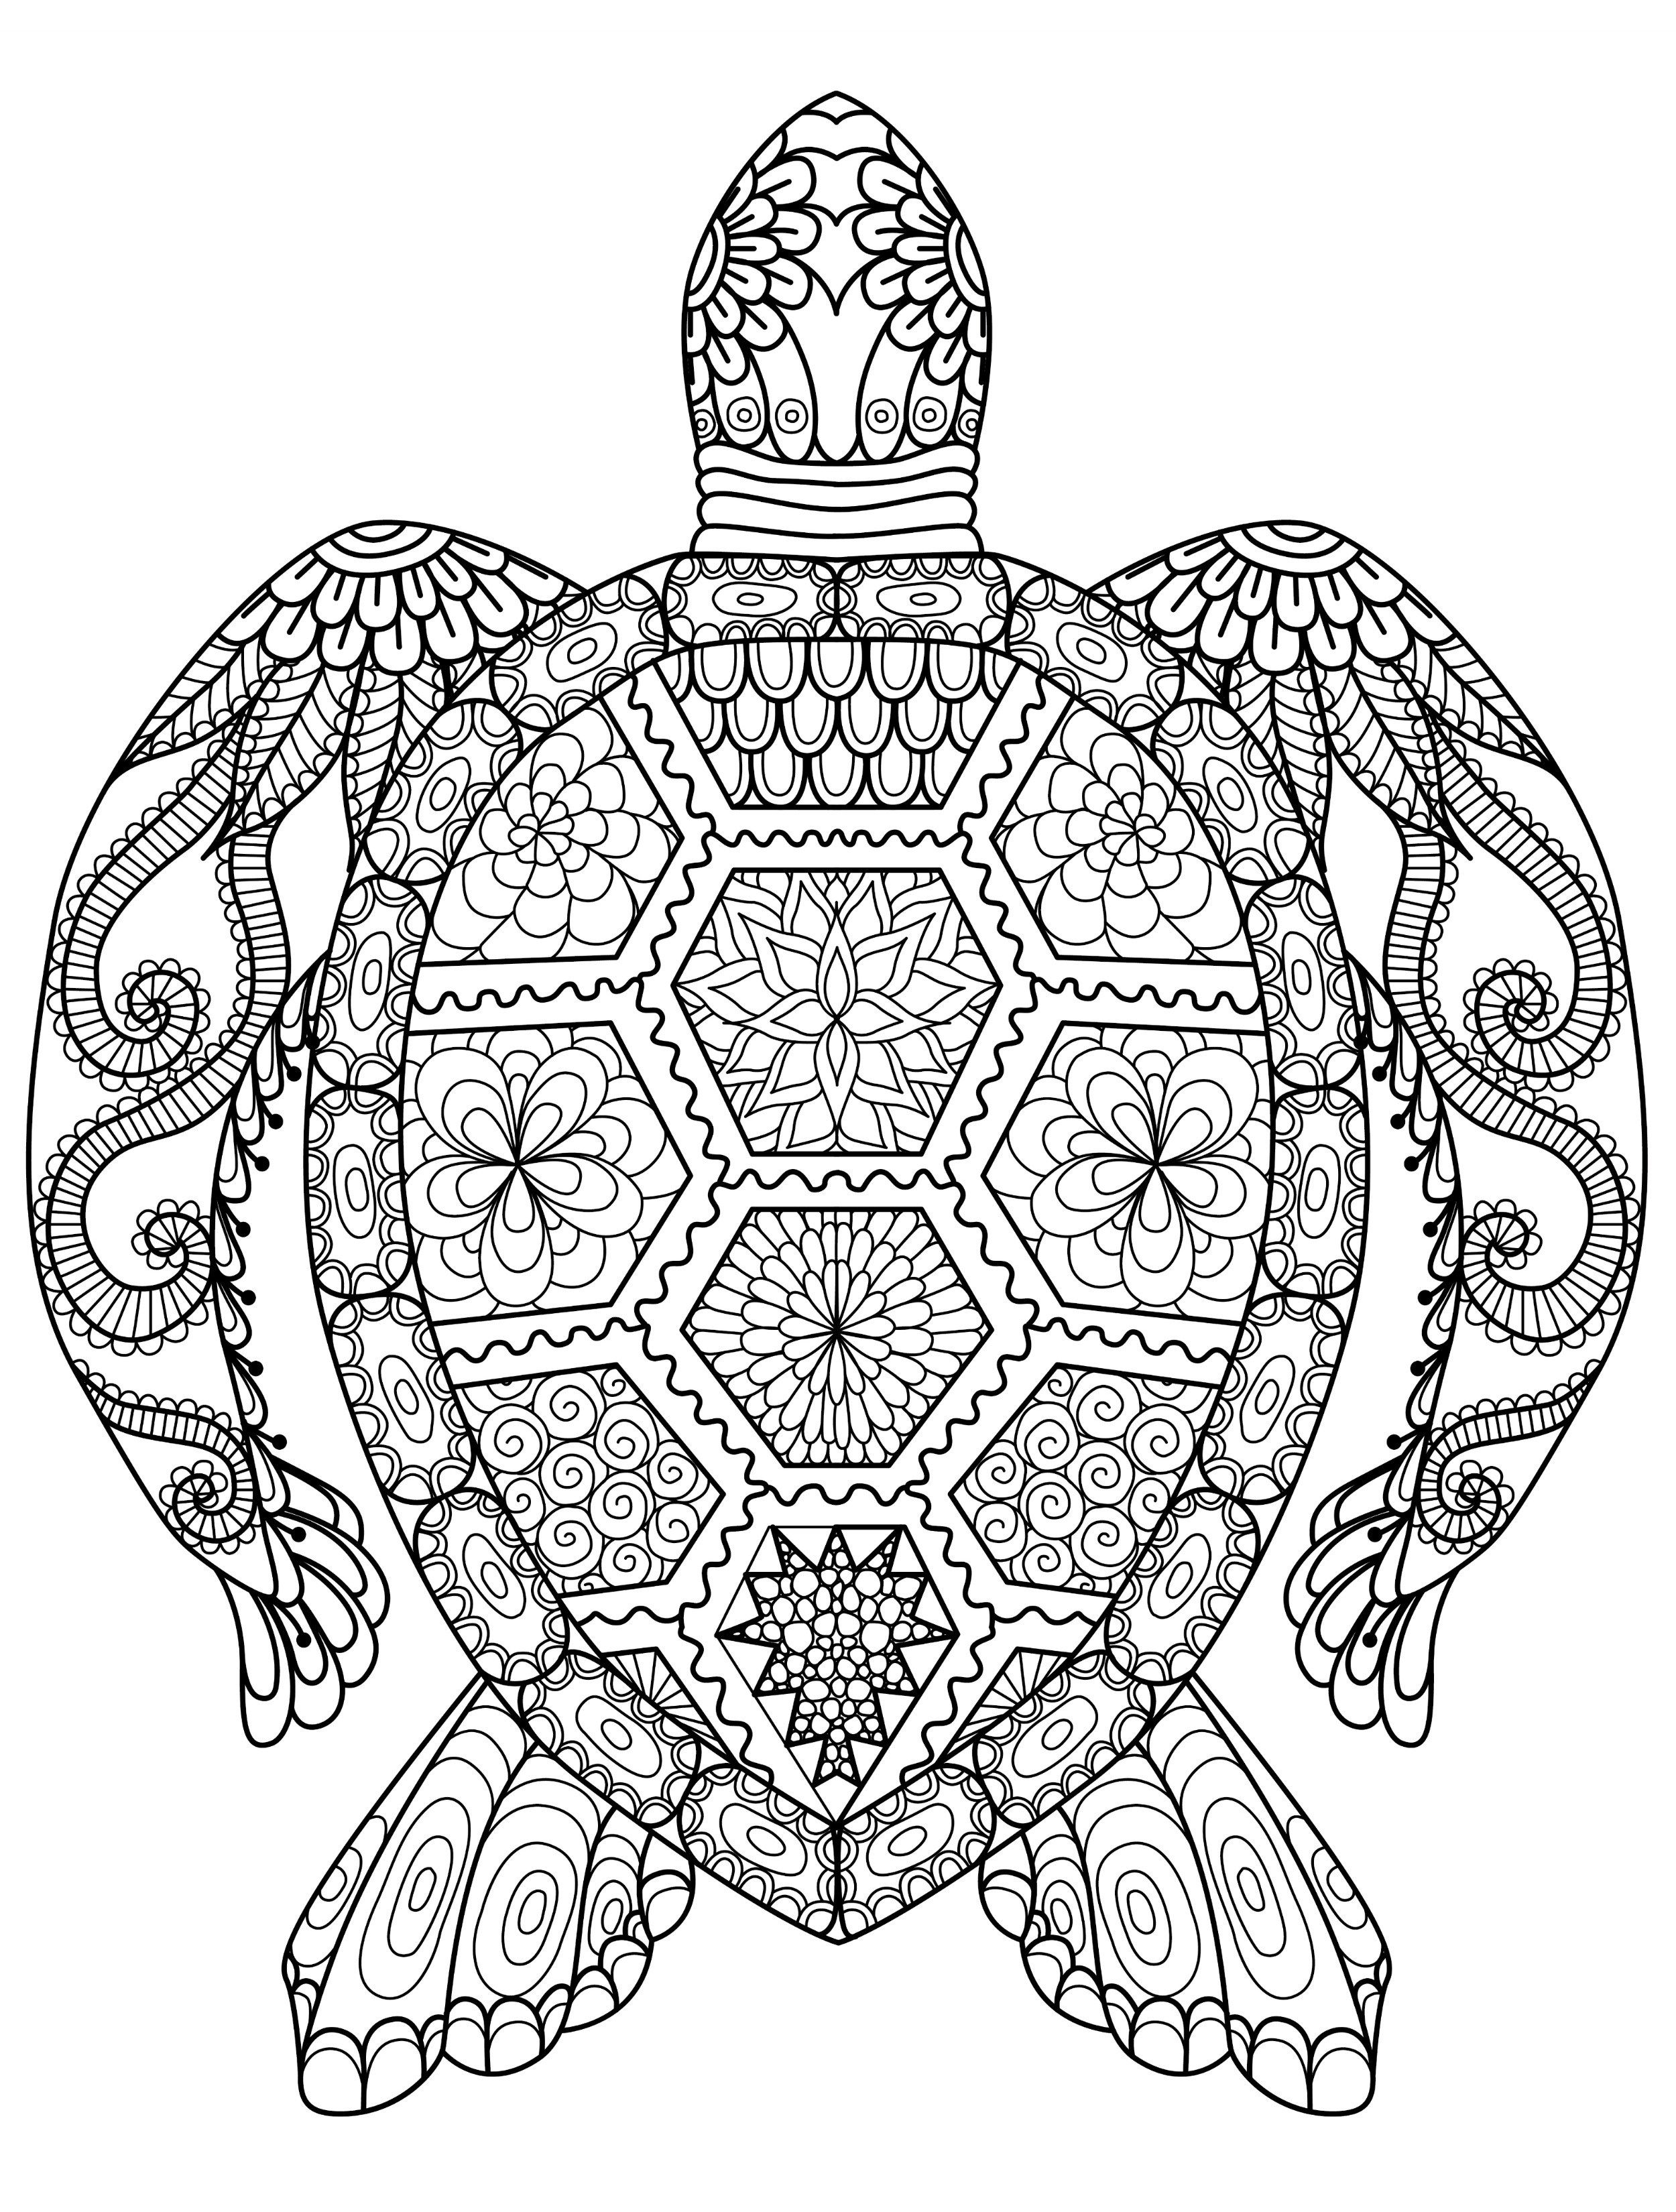 coloring pages for adults patterns get this flower pattern coloring pages to print for adults for patterns coloring adults pages